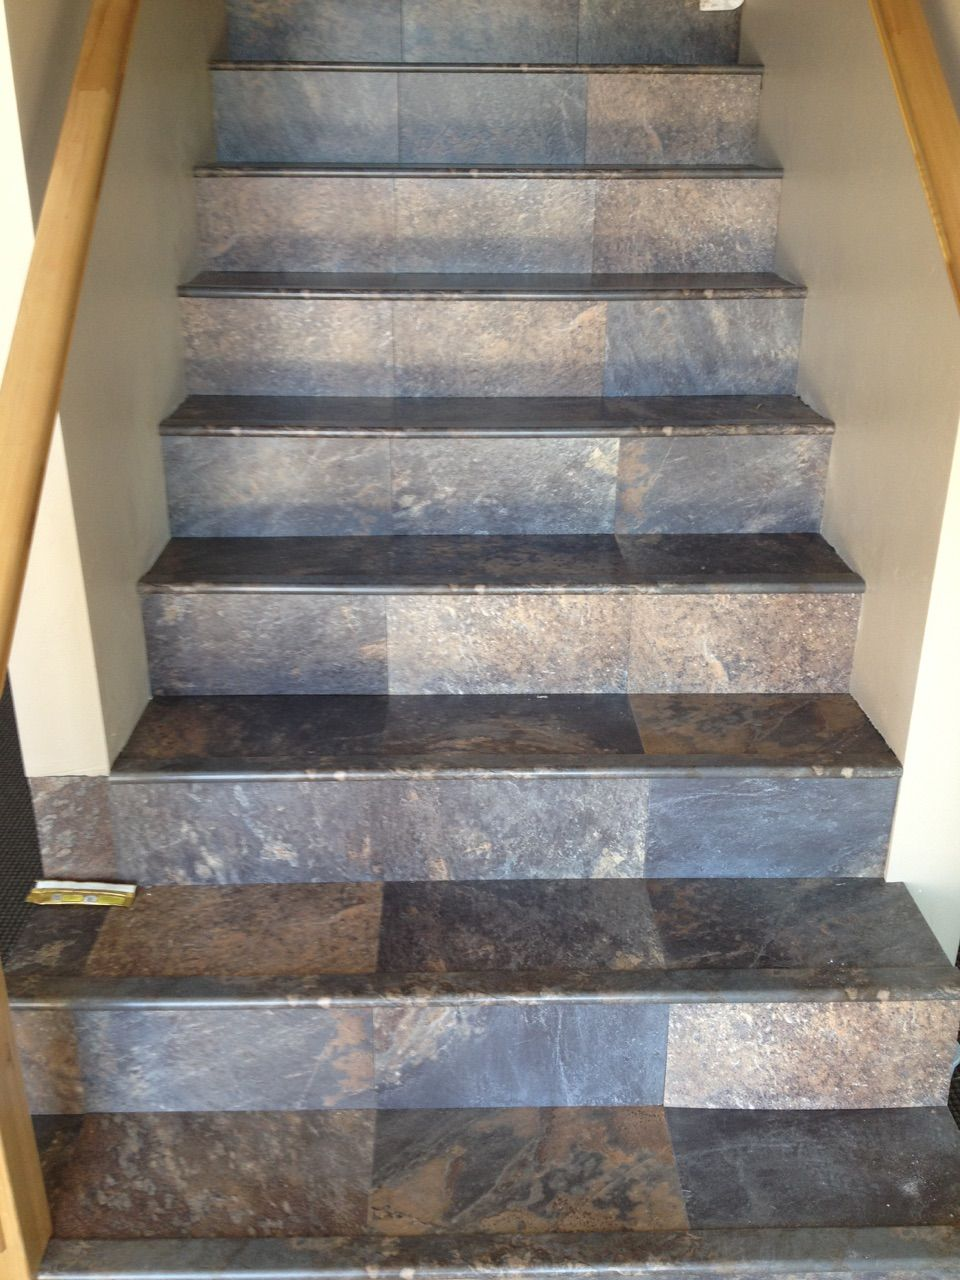 Ceramic Tile Stair Nosing Ever Wonder What Stair Nosings For Mannington Adura Looks Like On